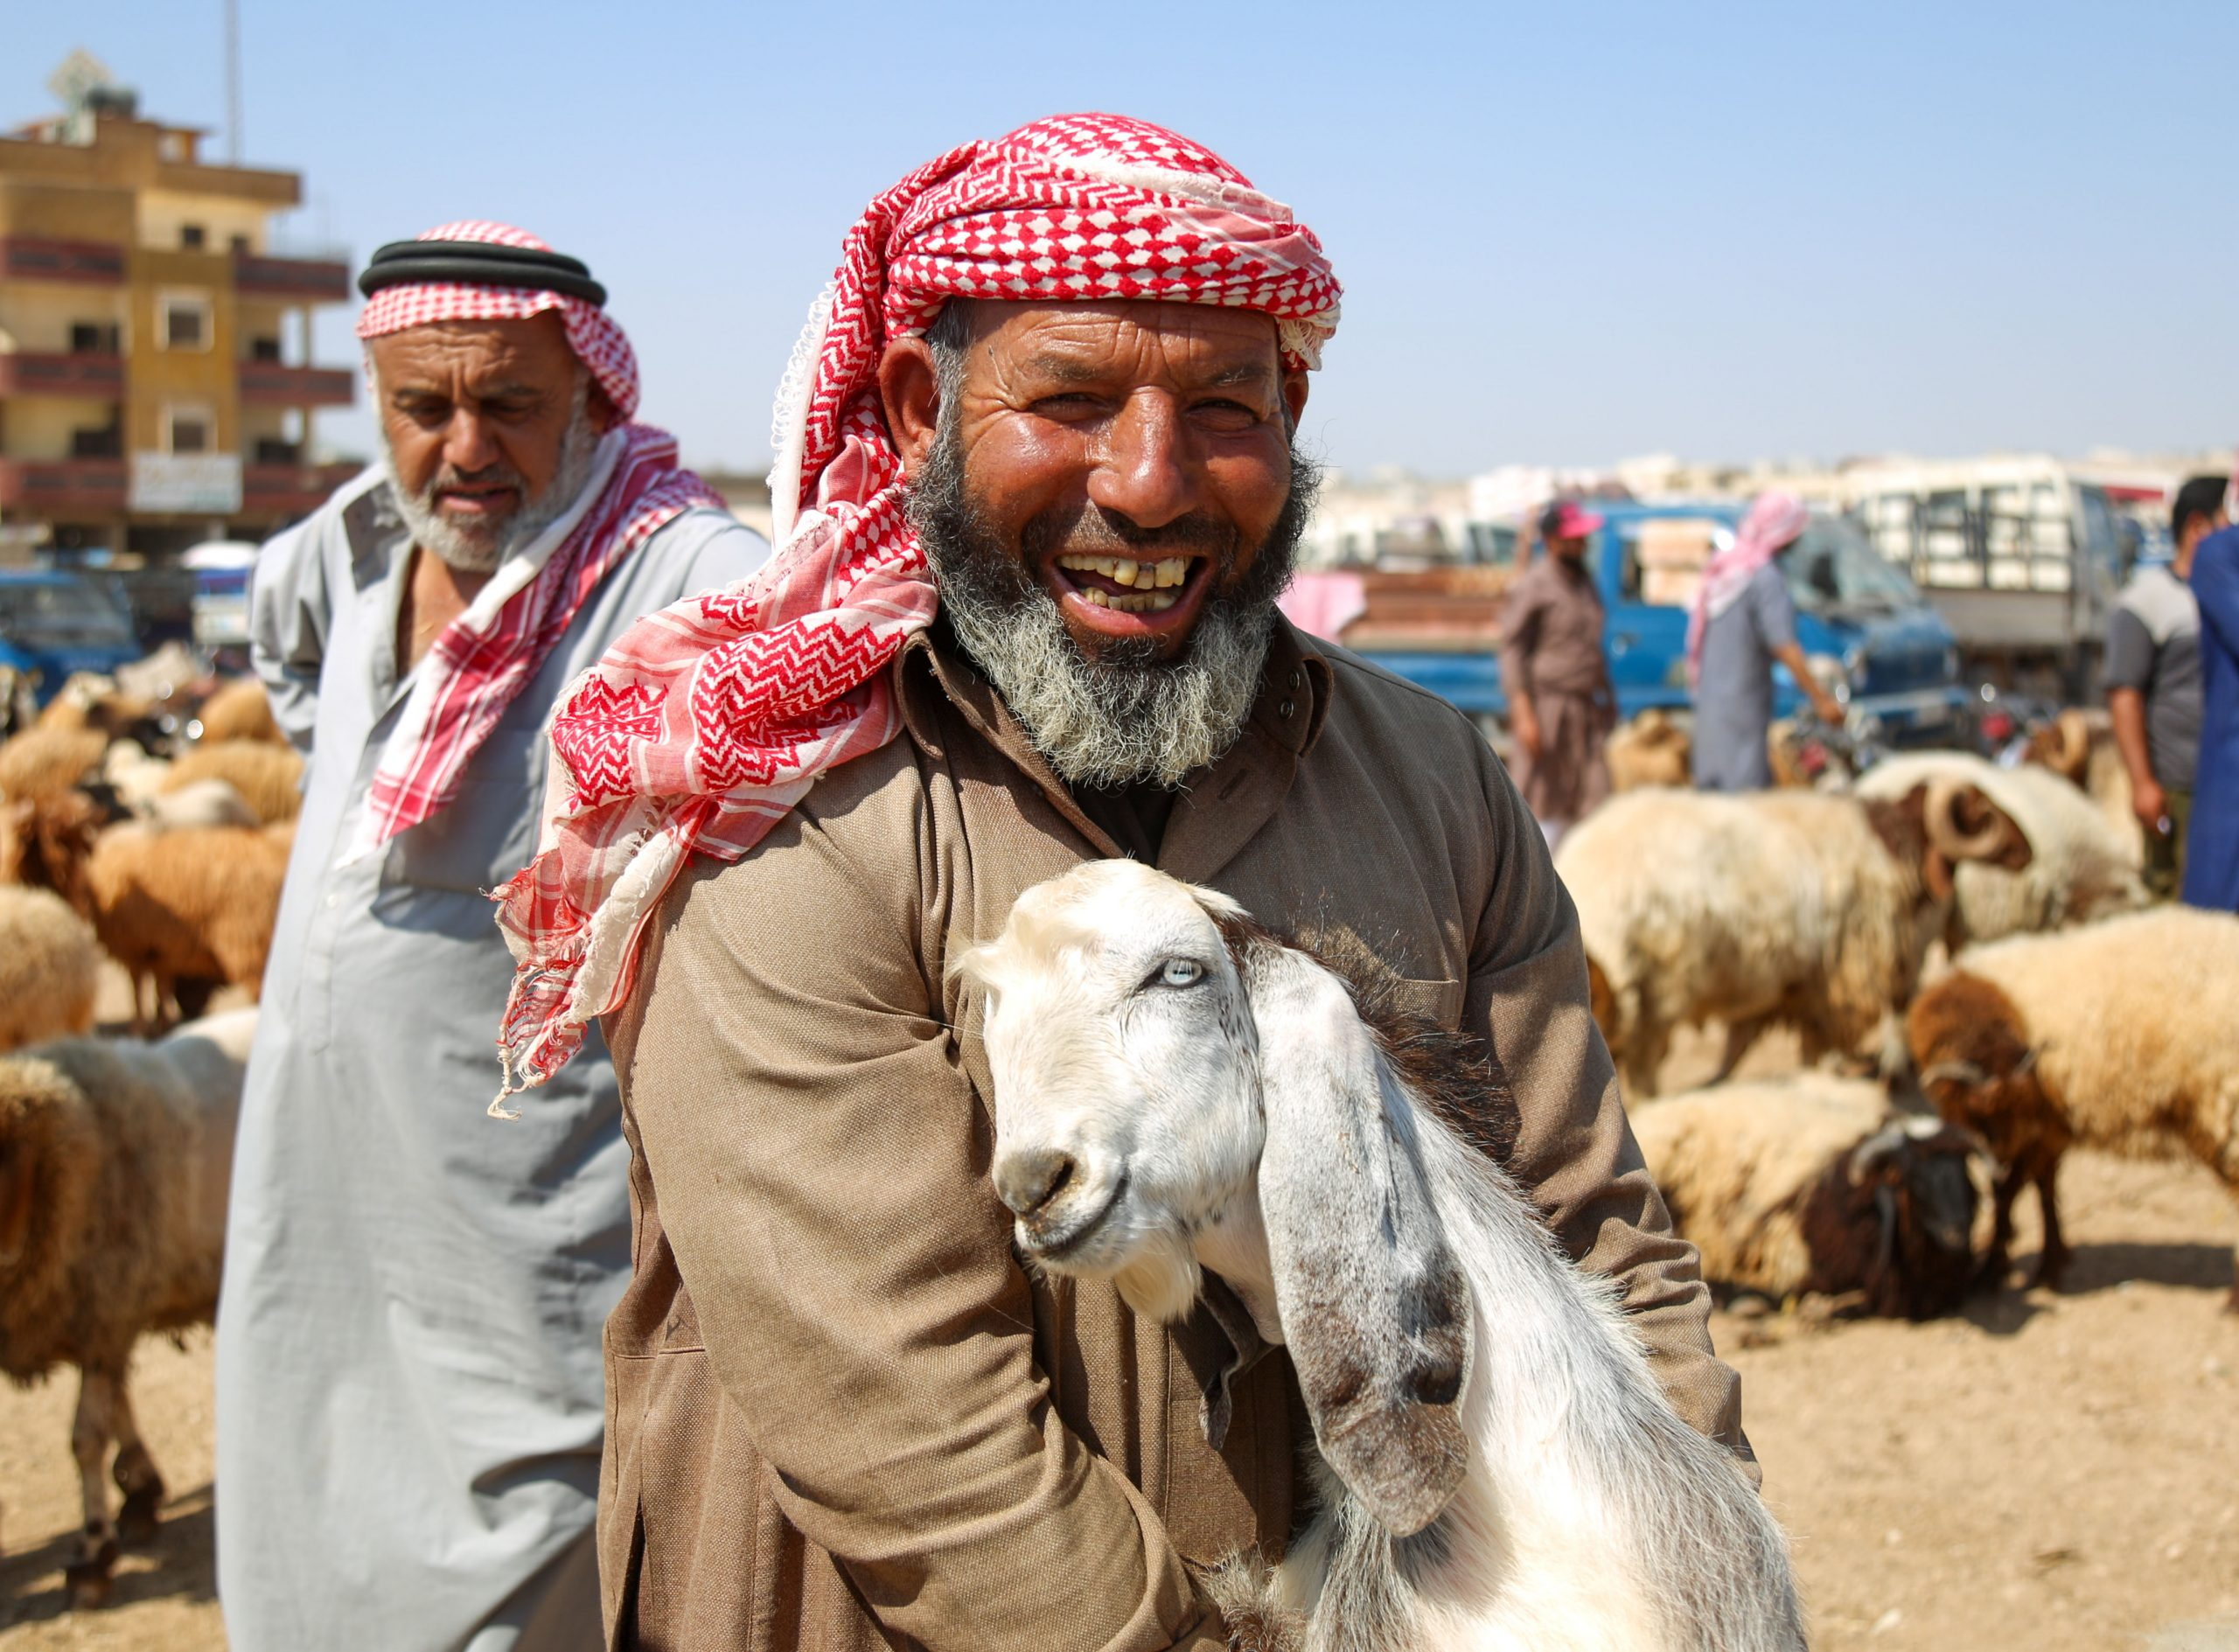 A man smiles while carrying a goat in the sheep market in Idlib province northwest Syria, on the eve of Eid al-Adha